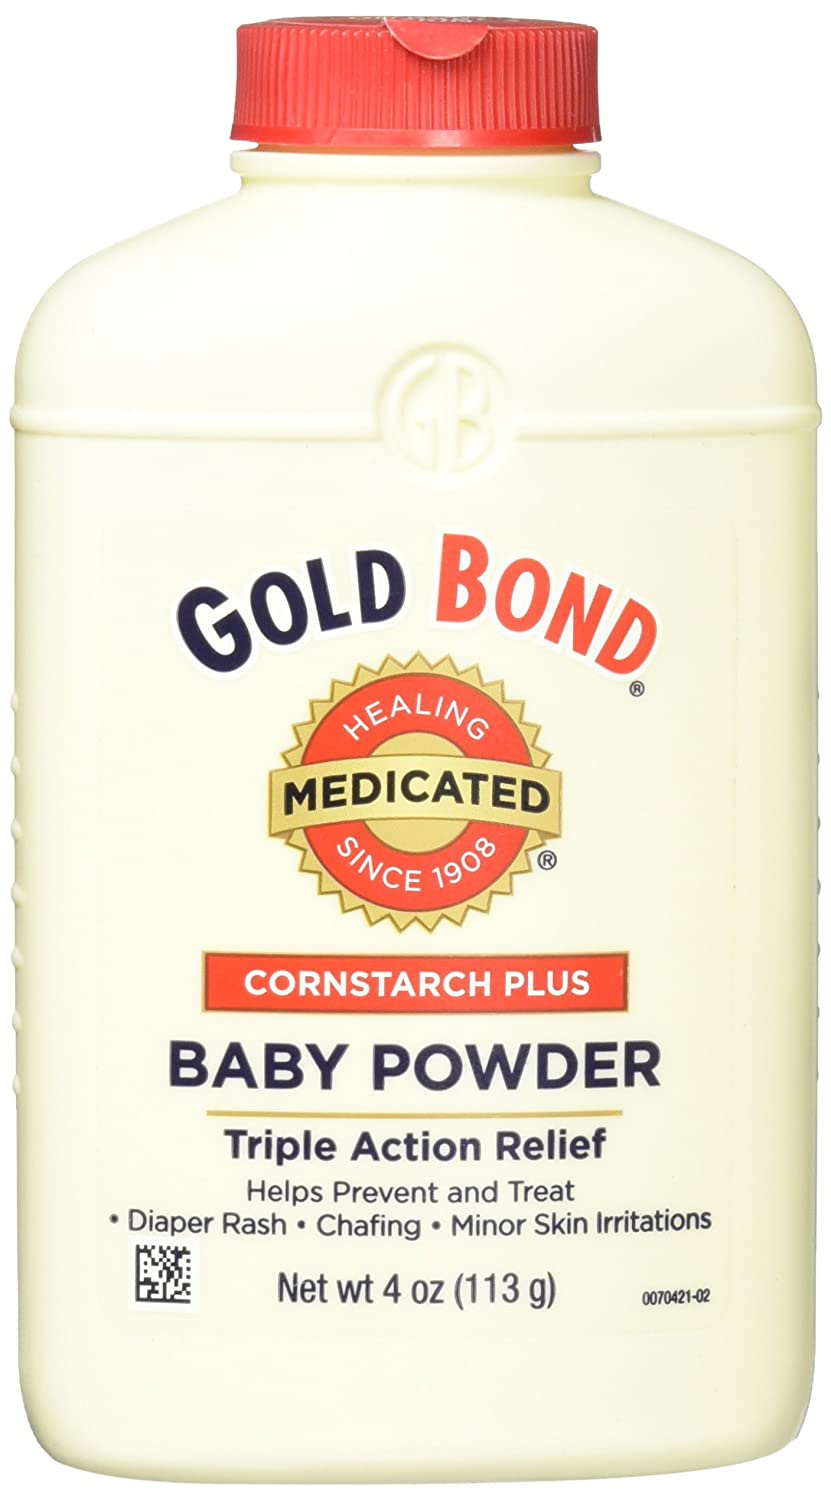 Gold Bond Cornstarch Plus Baby Powder, 4 oz. 41167023044